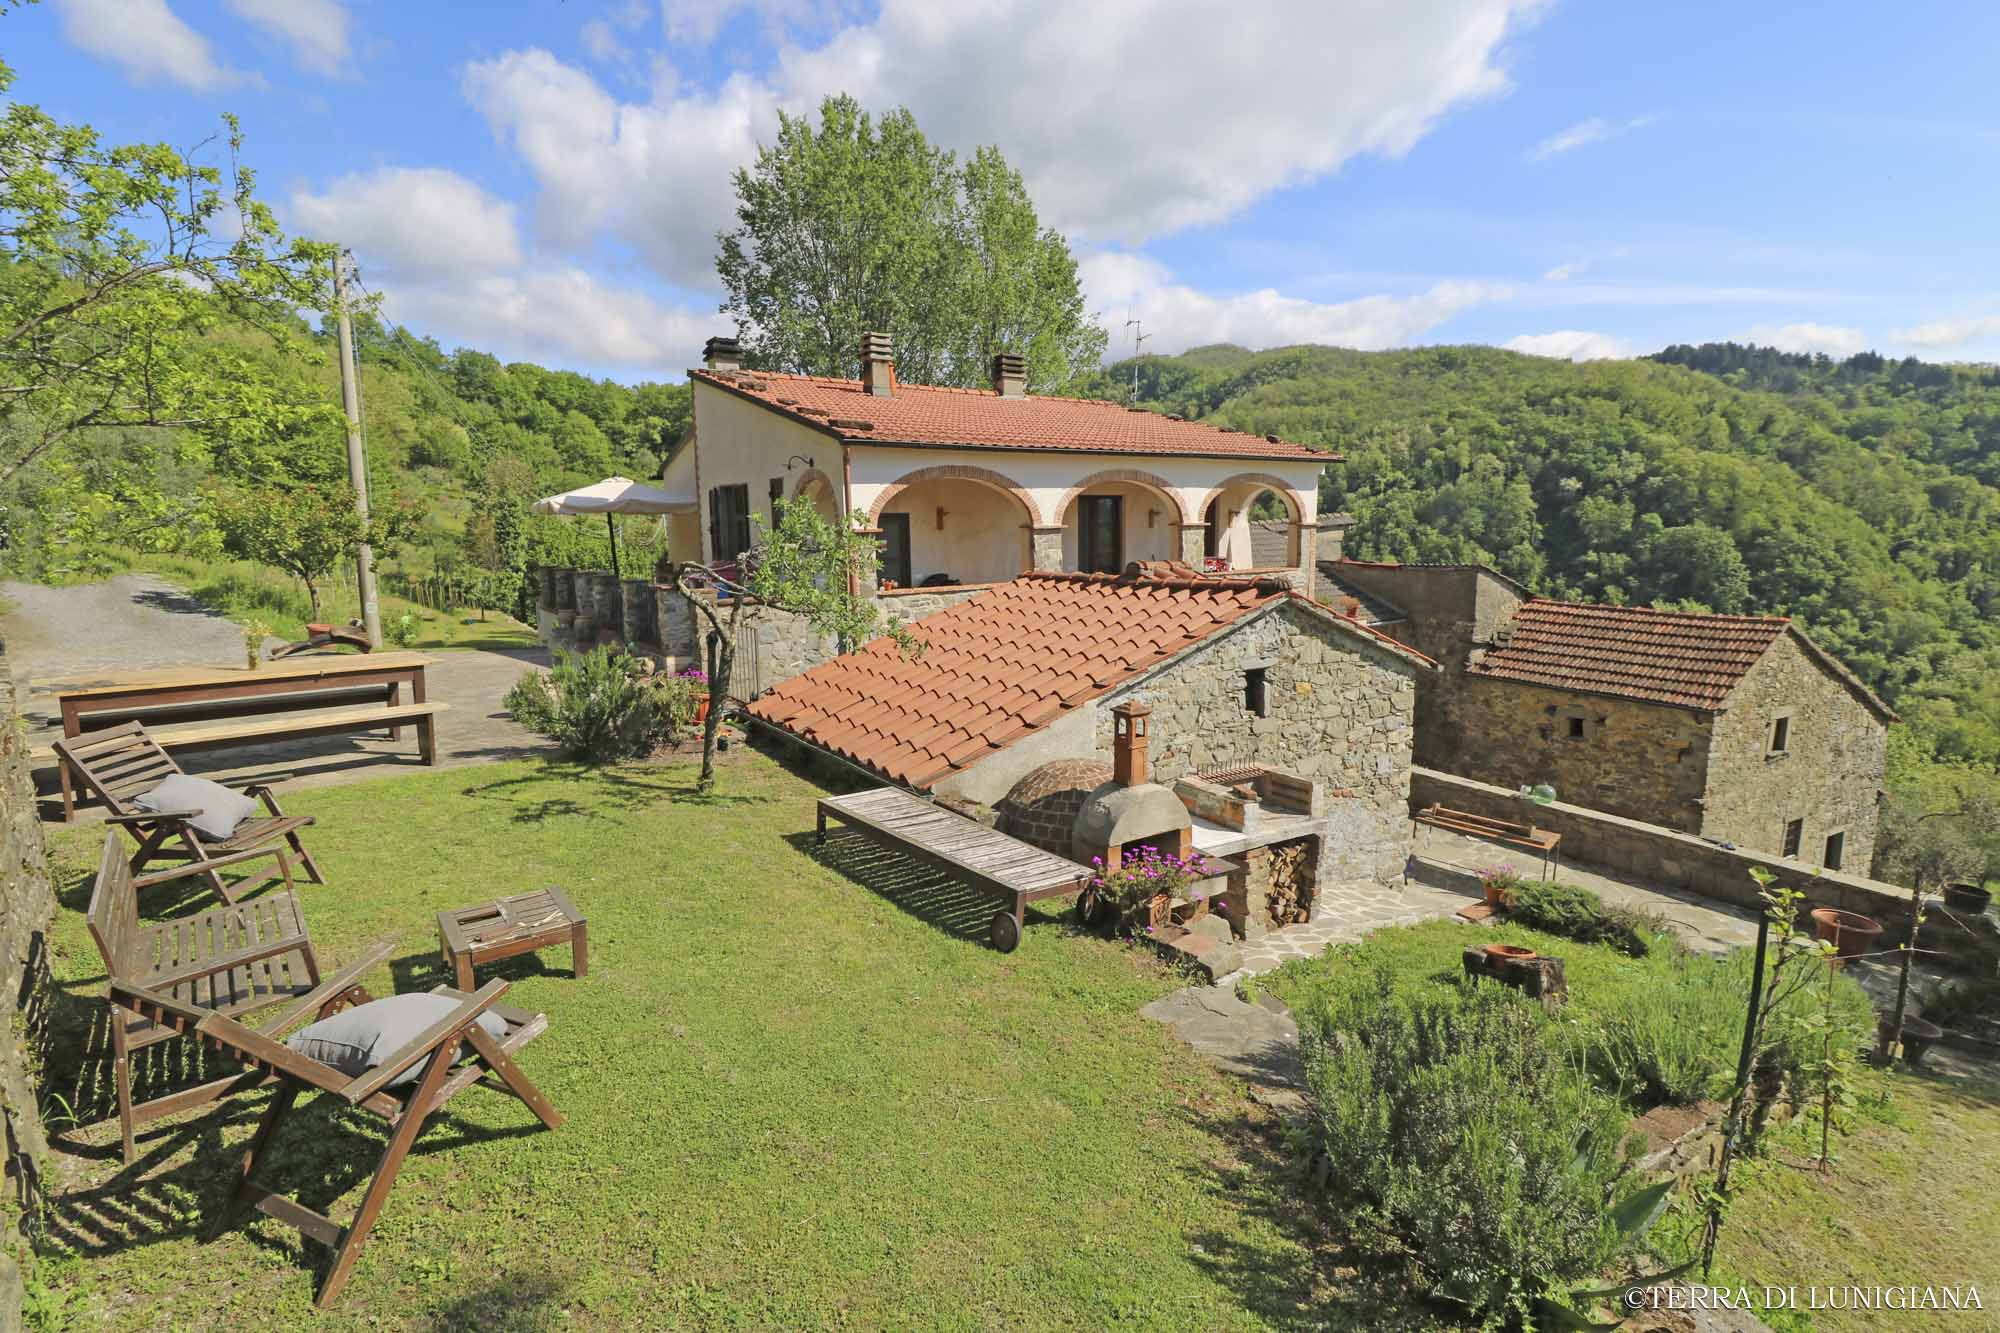 LA RUGIADA – Historic Renovated Country Stone House with Garden